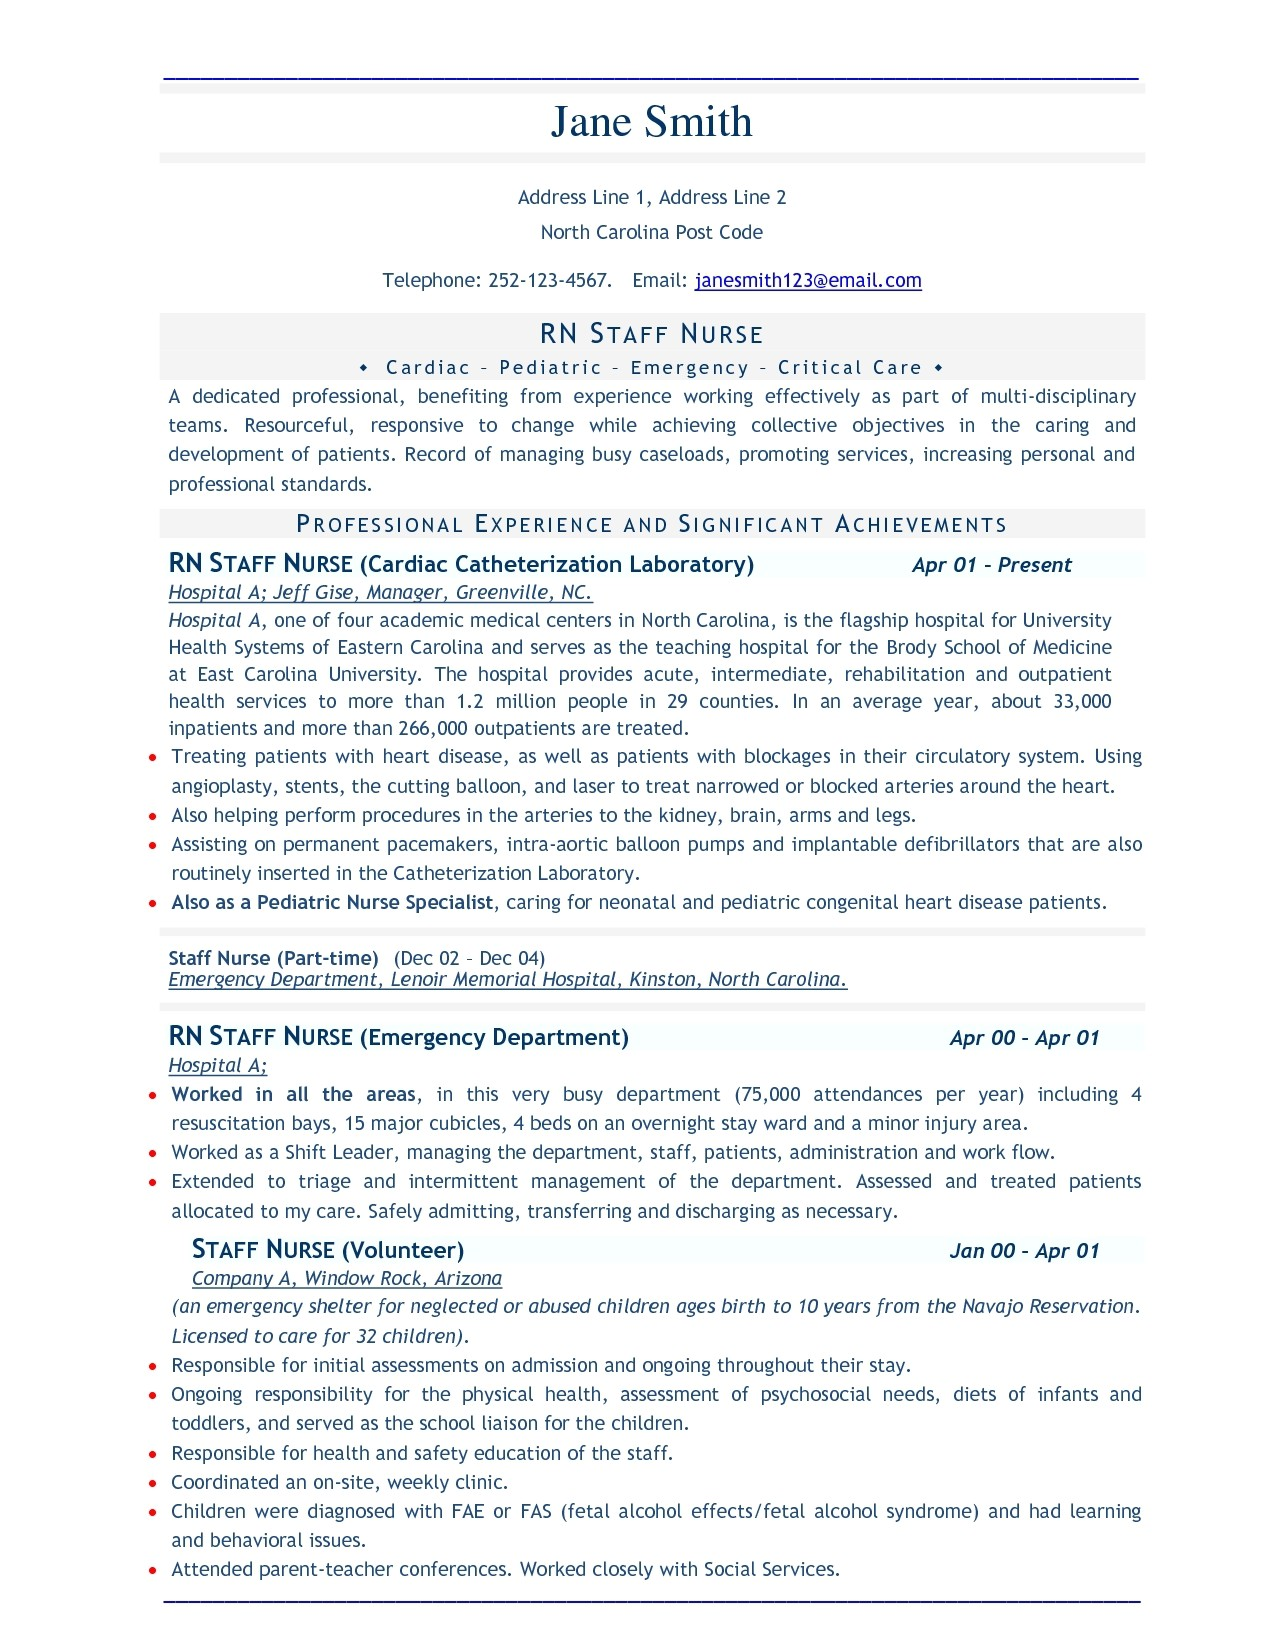 Free Professional Resume Examples and Samples Download Professional Resume Template Sample Resume